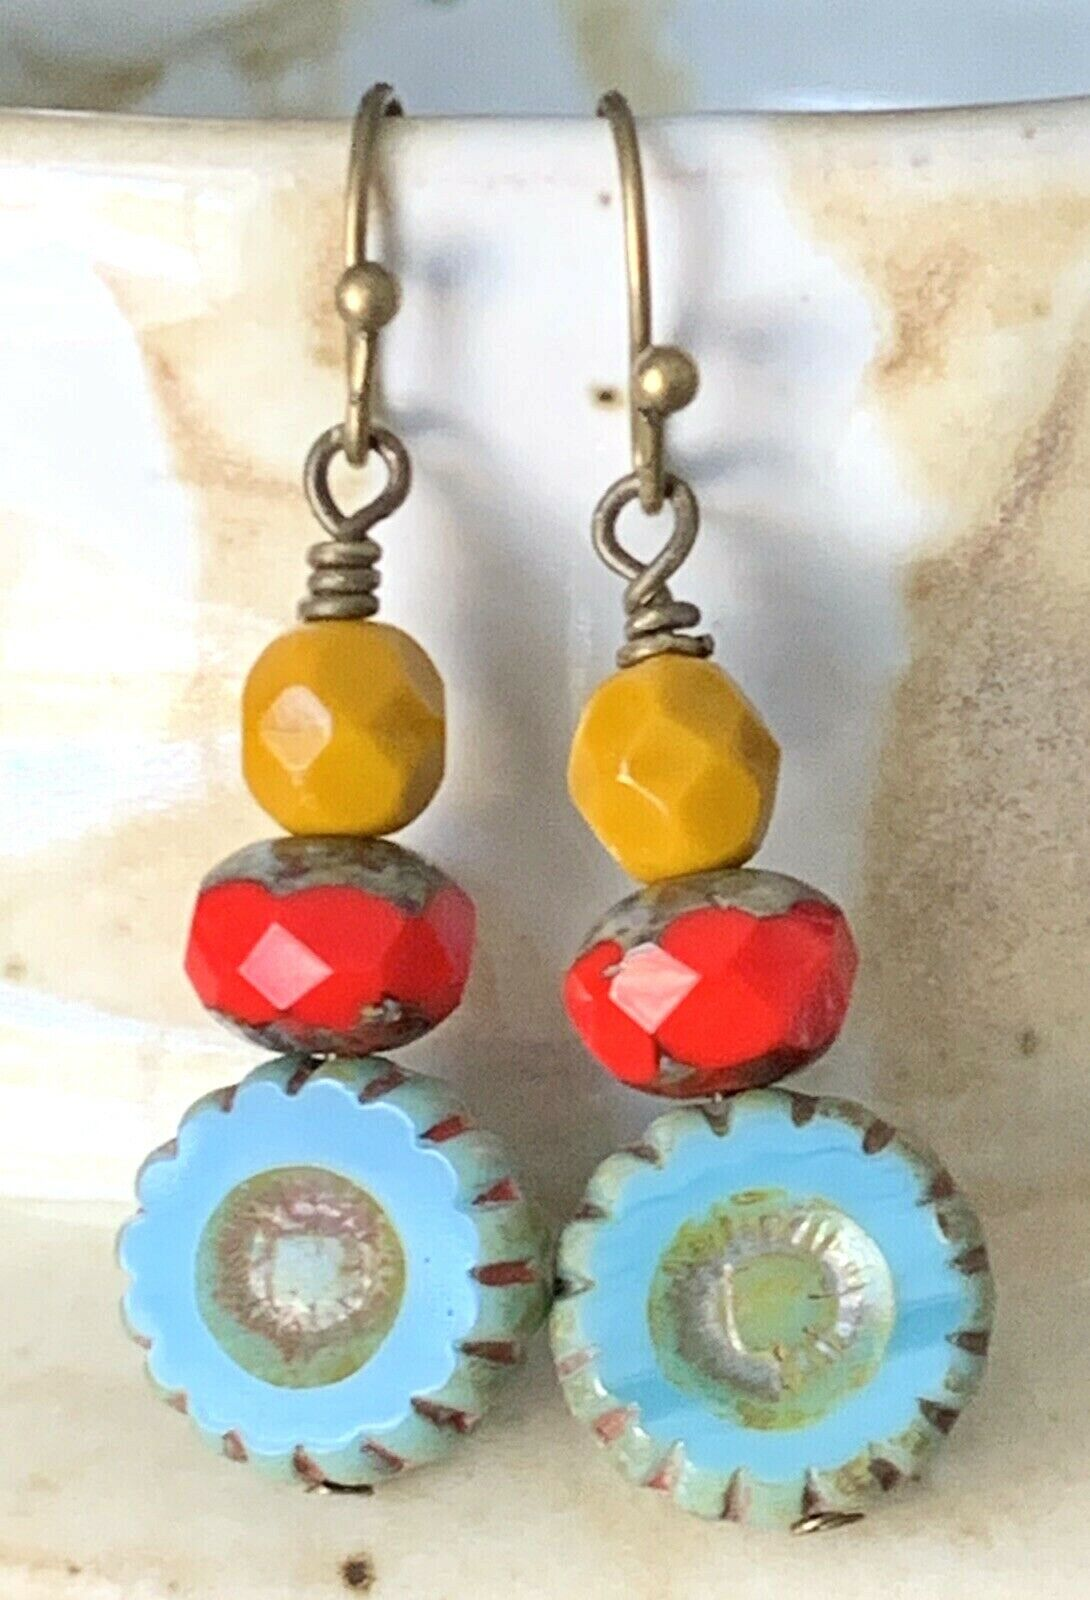 Bronze, Turquoise, Red And Apricot Picasso Bead Earrings. Boho Chic. - $5.99